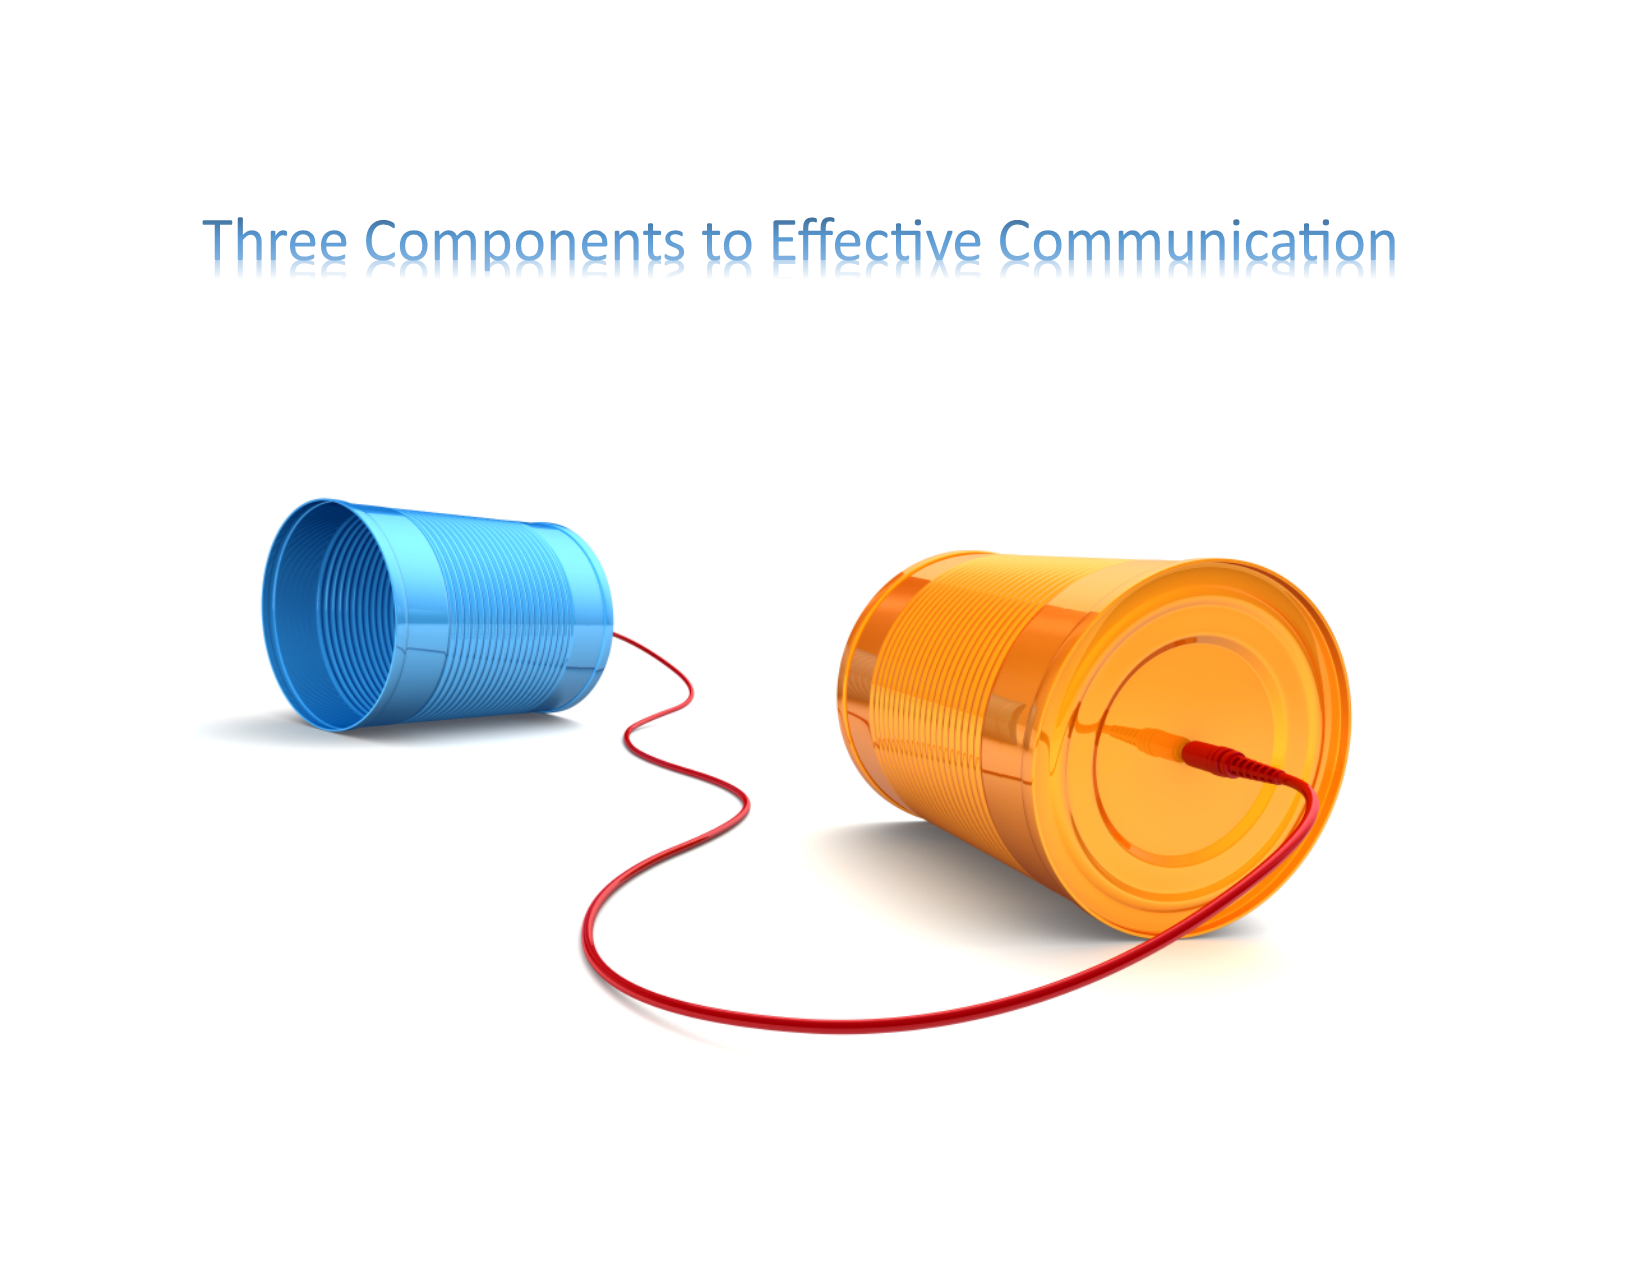 Three Components to Effective Communication, MGS Counseling, Communication, Listening,Motivation, Growth Success